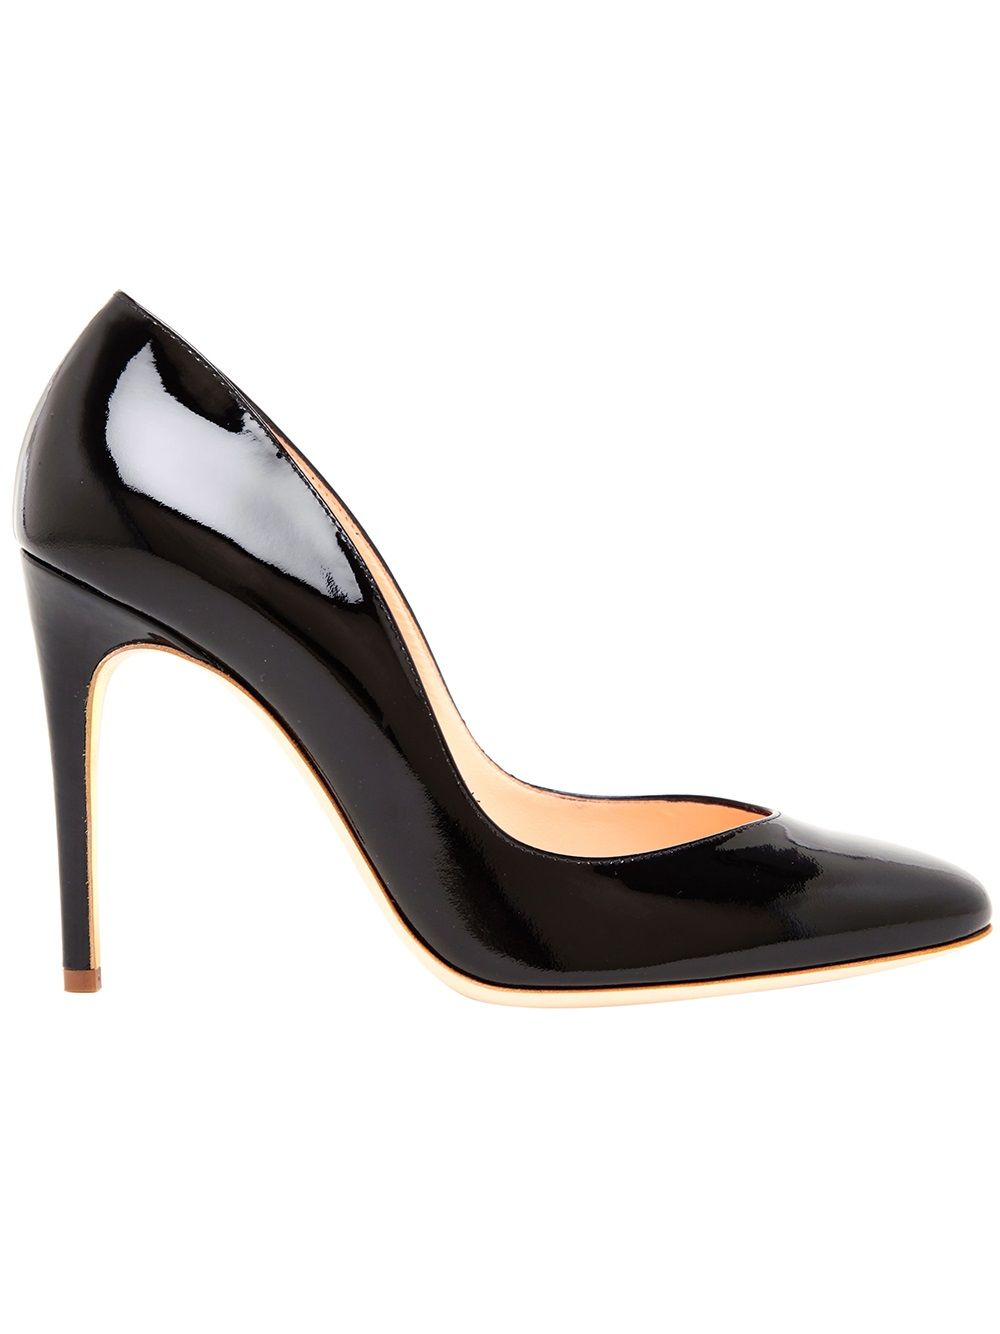 Sears has an elegant selection of women's heels to enhance your wardrobe. Find the latest women's pumps that complement all your outfits perfectly.